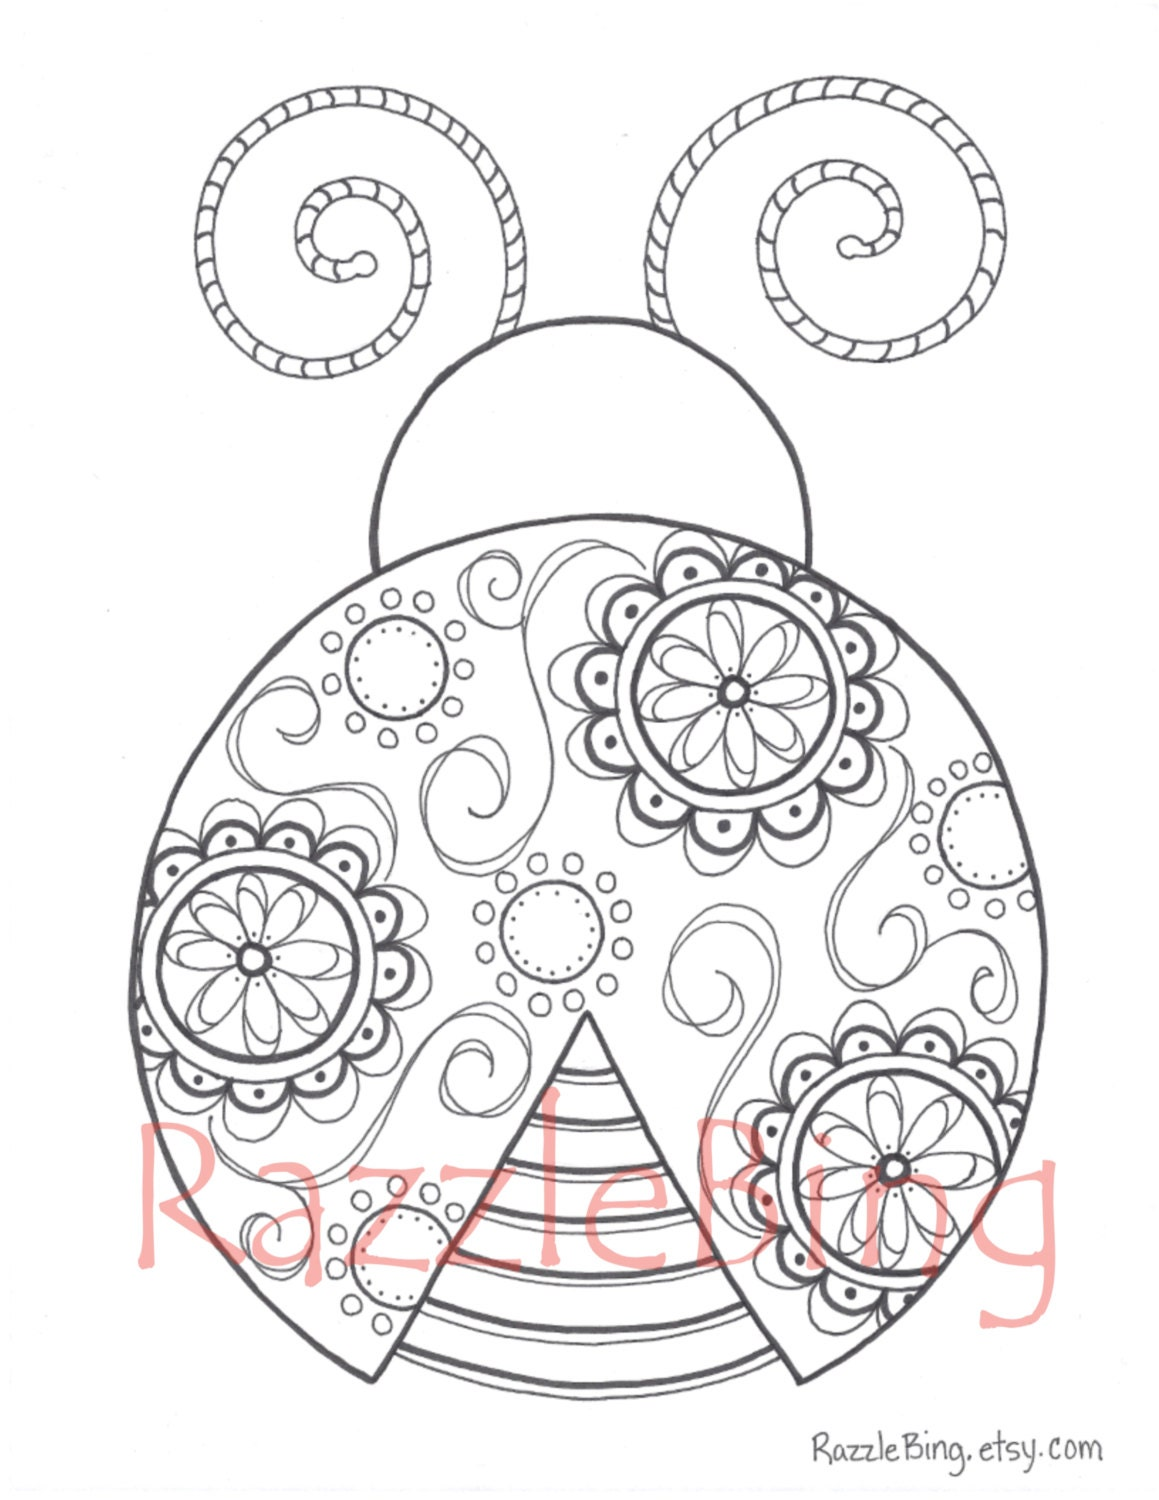 diy printable coloring page zentangle inspired lady bug